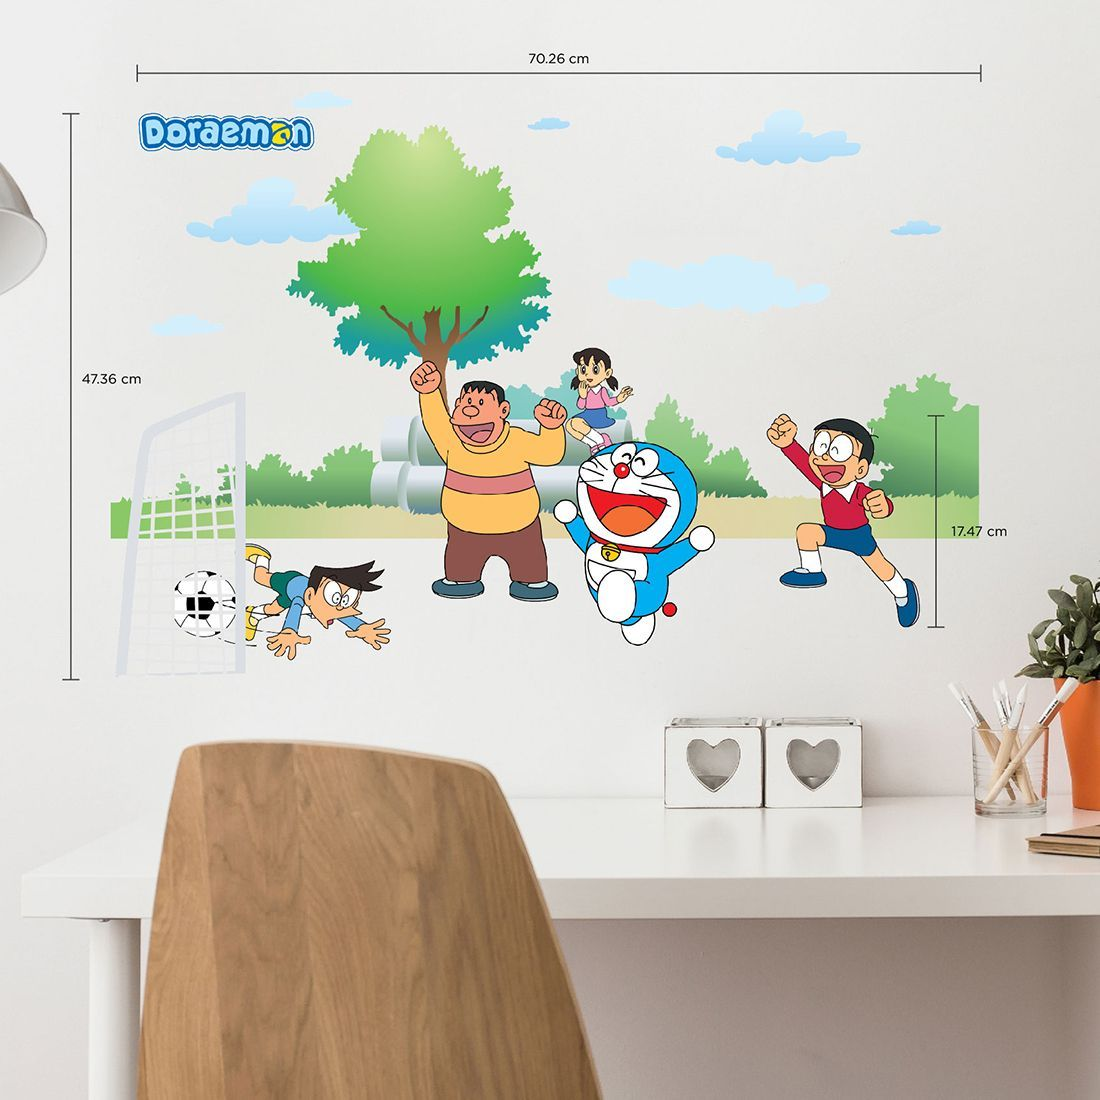 Wallpaper Sticker Doraemon Dinding Anak